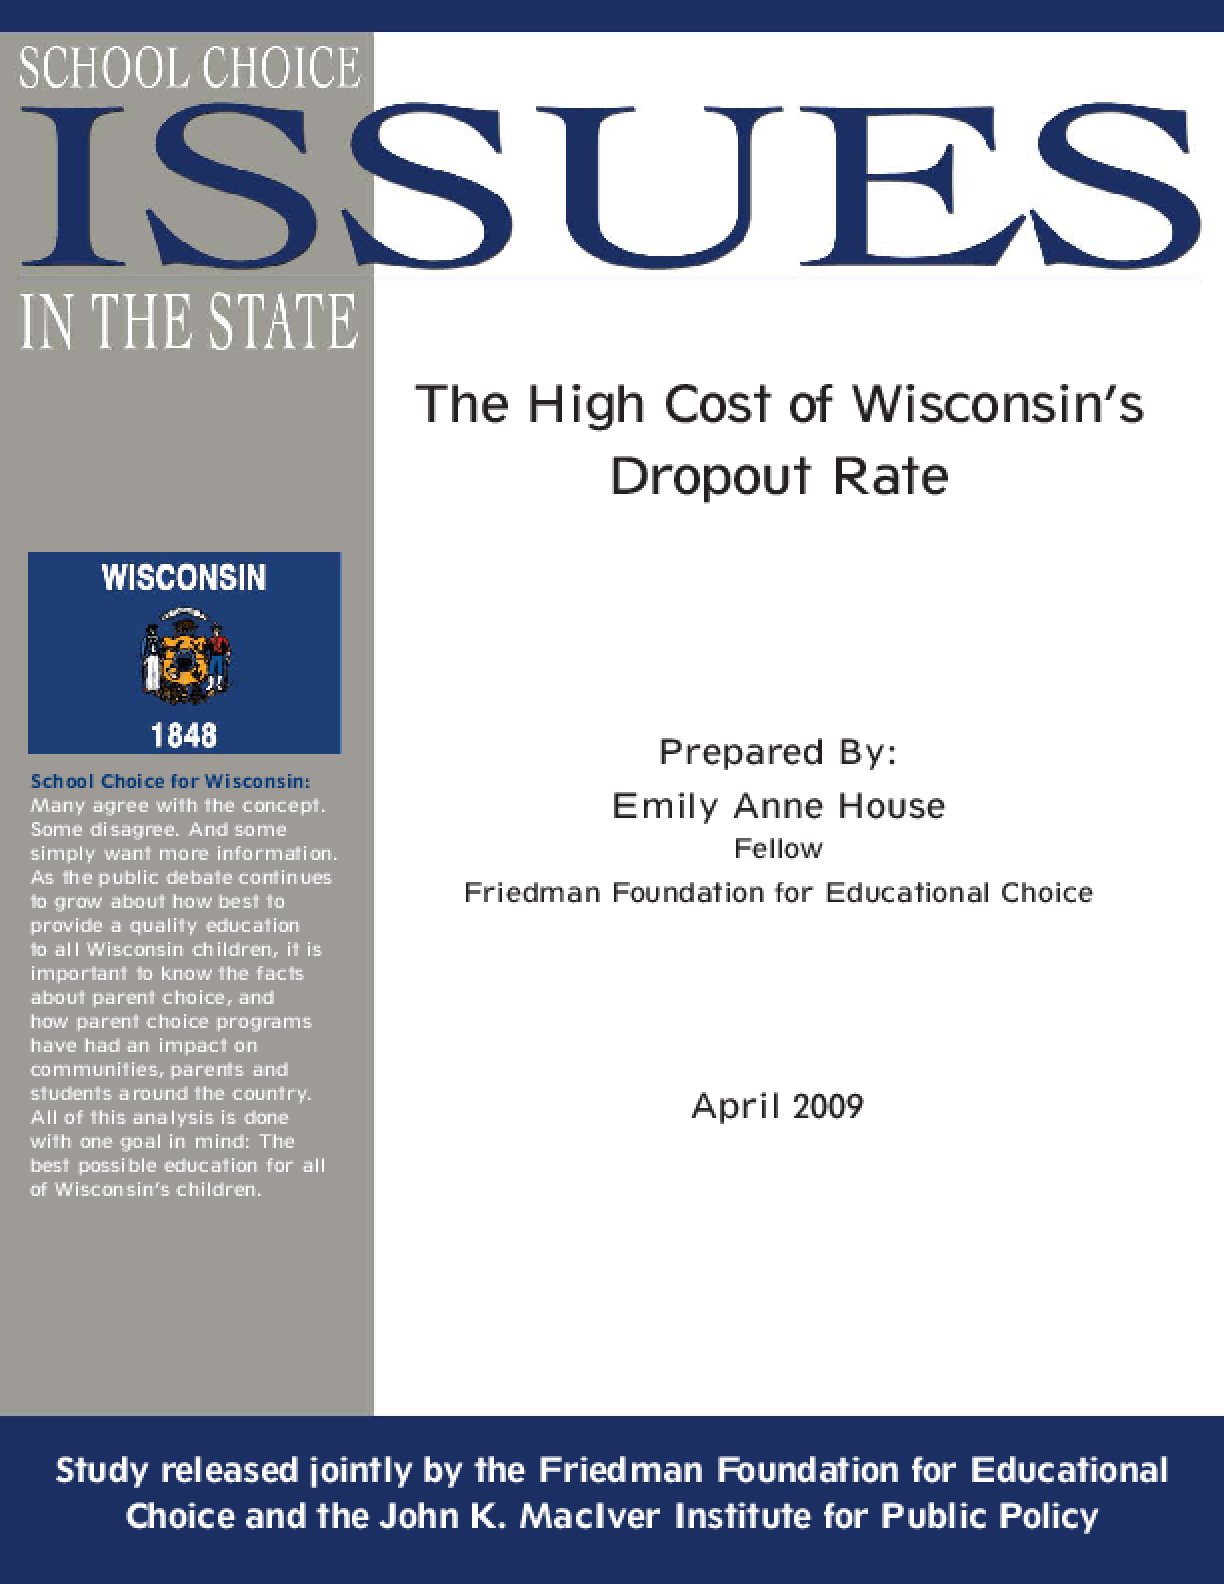 High Cost of Wisconsin's Dropout Rate, The